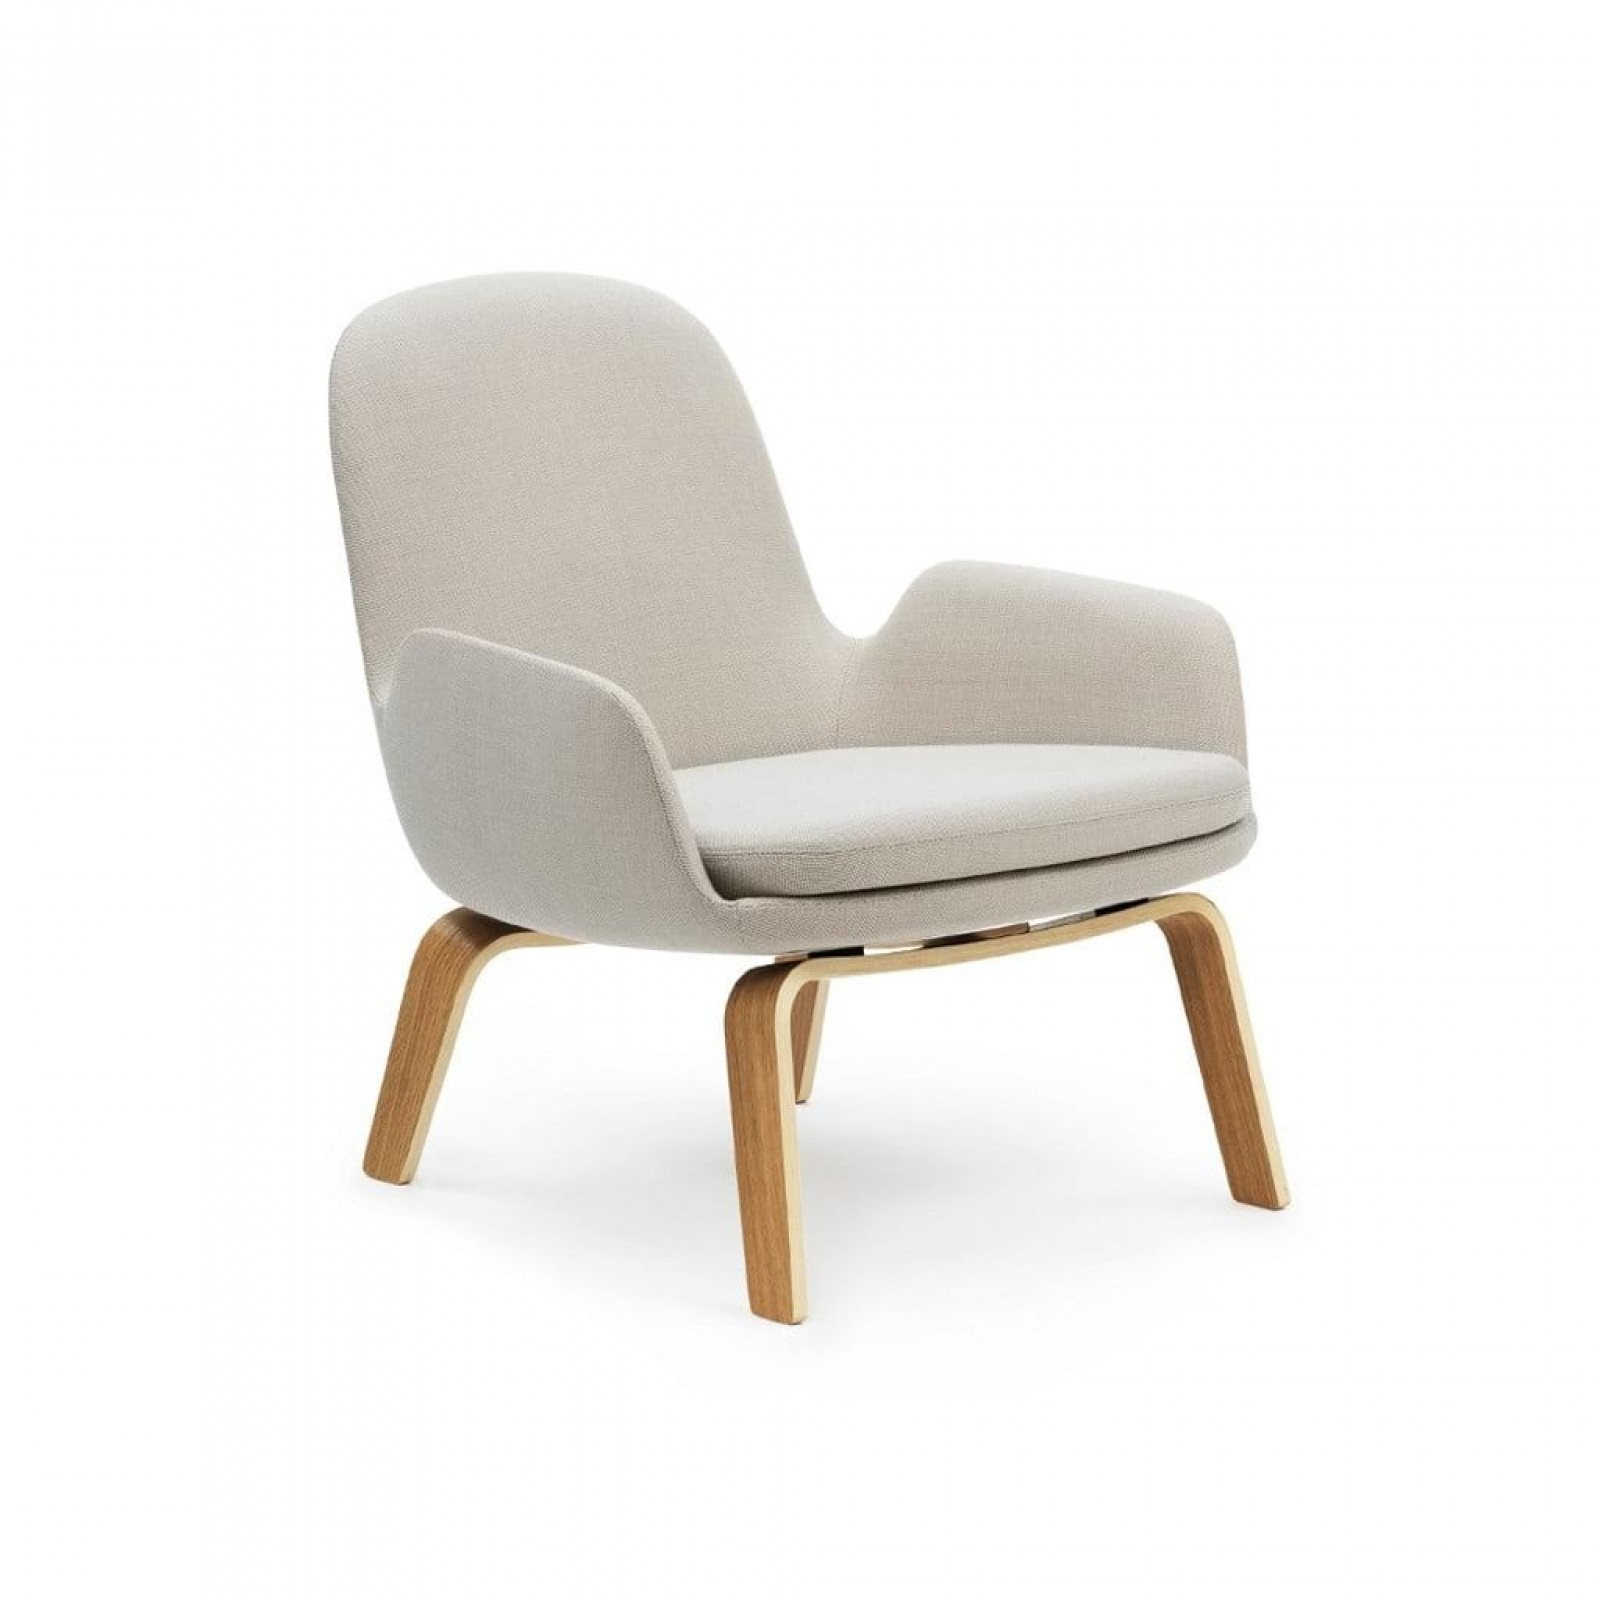 Era Lounge Chair Low (Wood) - Normann Copenhagen